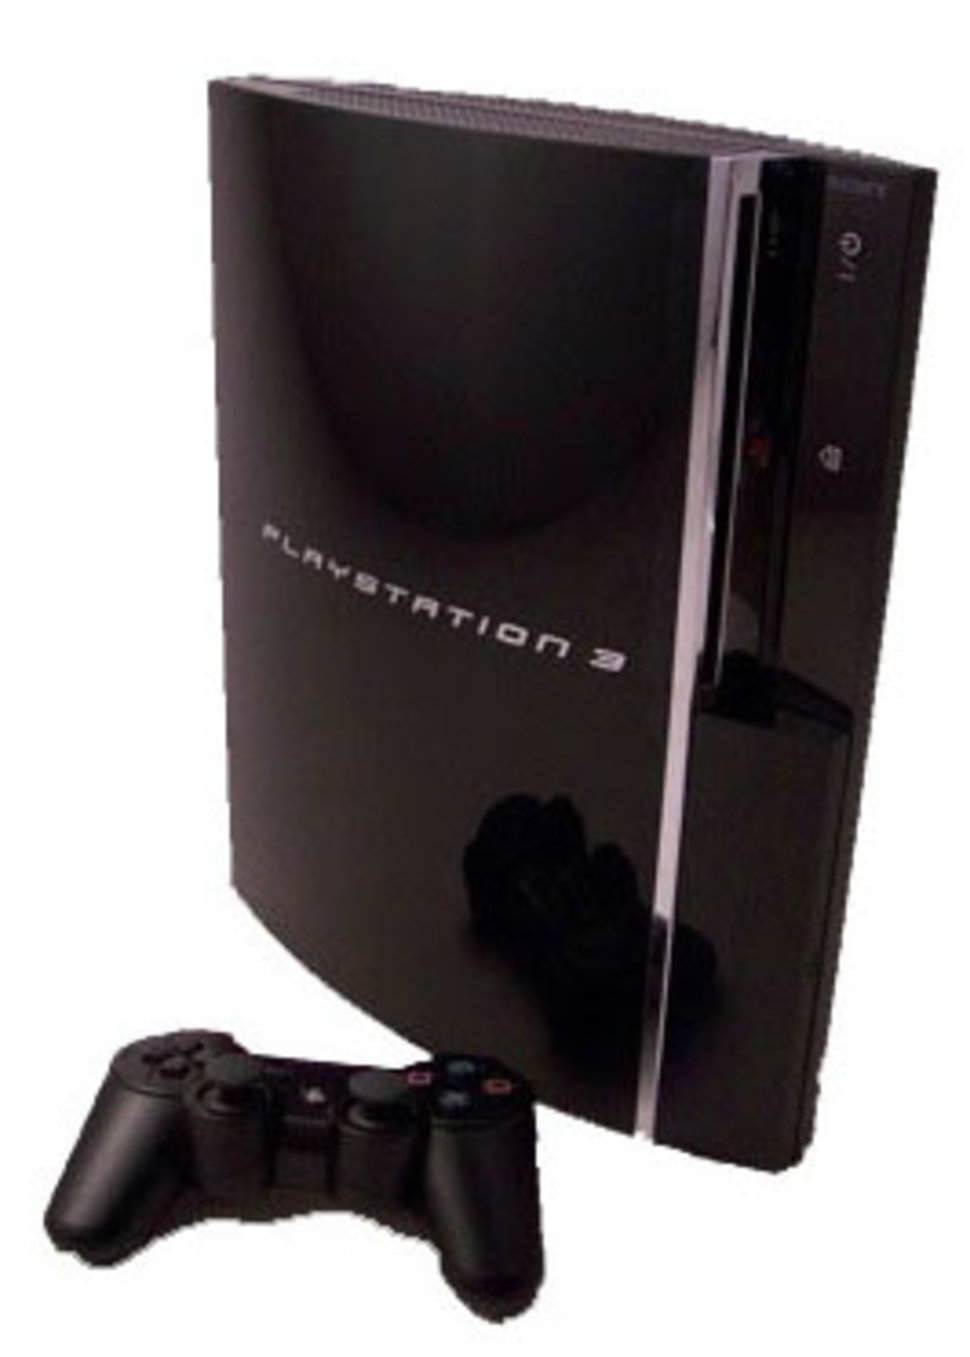 playstation 3 games console ps3